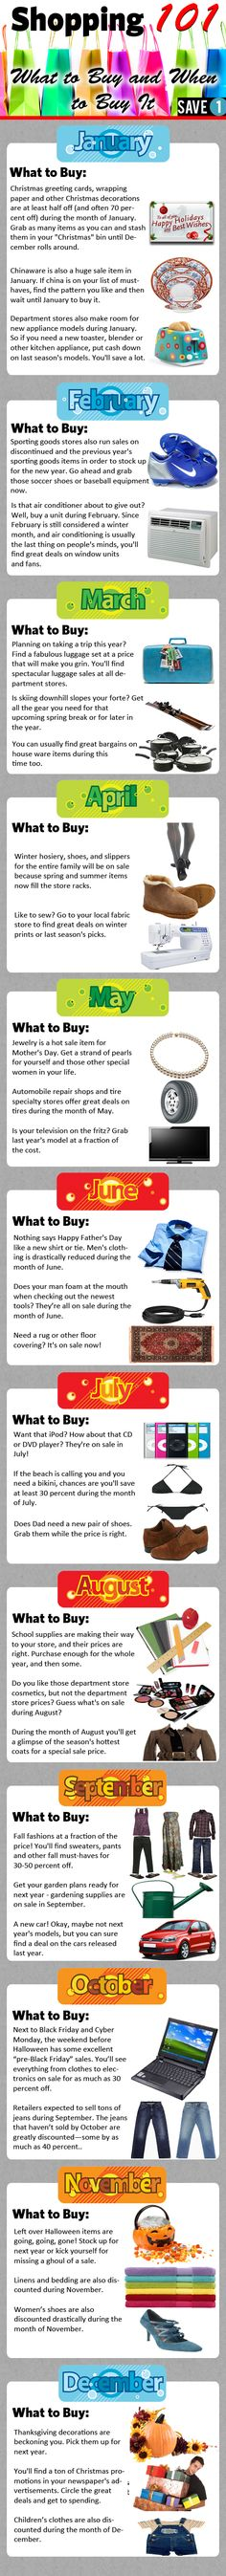 Best times to purchase household items.